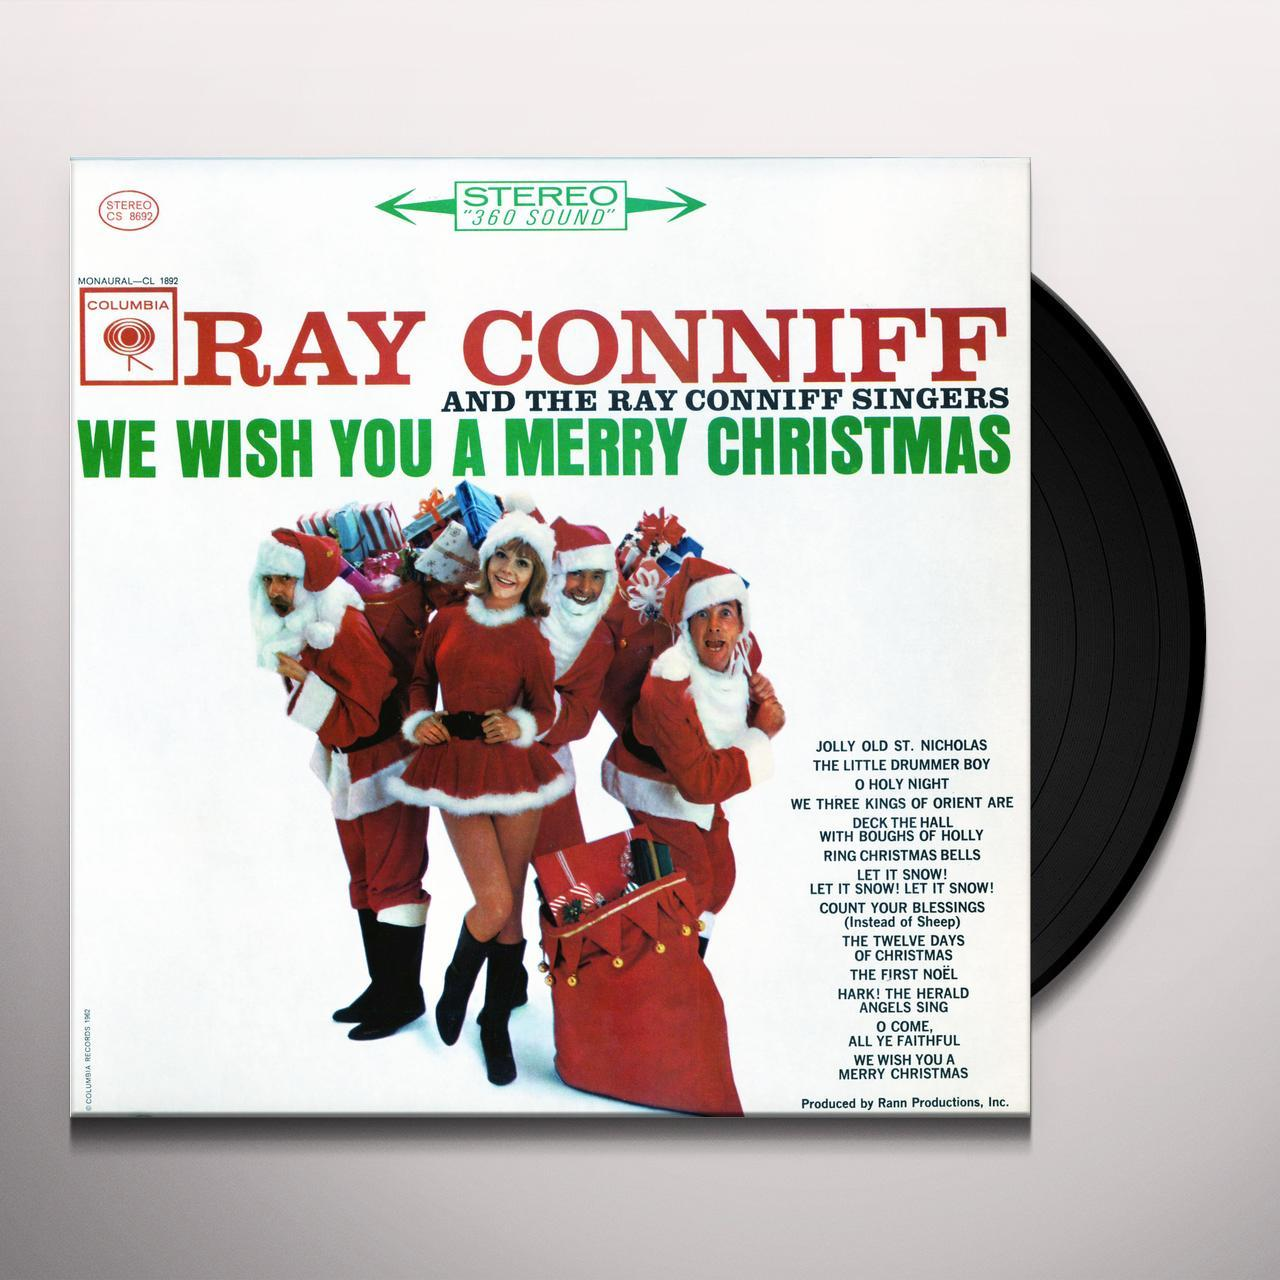 tap to expand - Ray Conniff Christmas